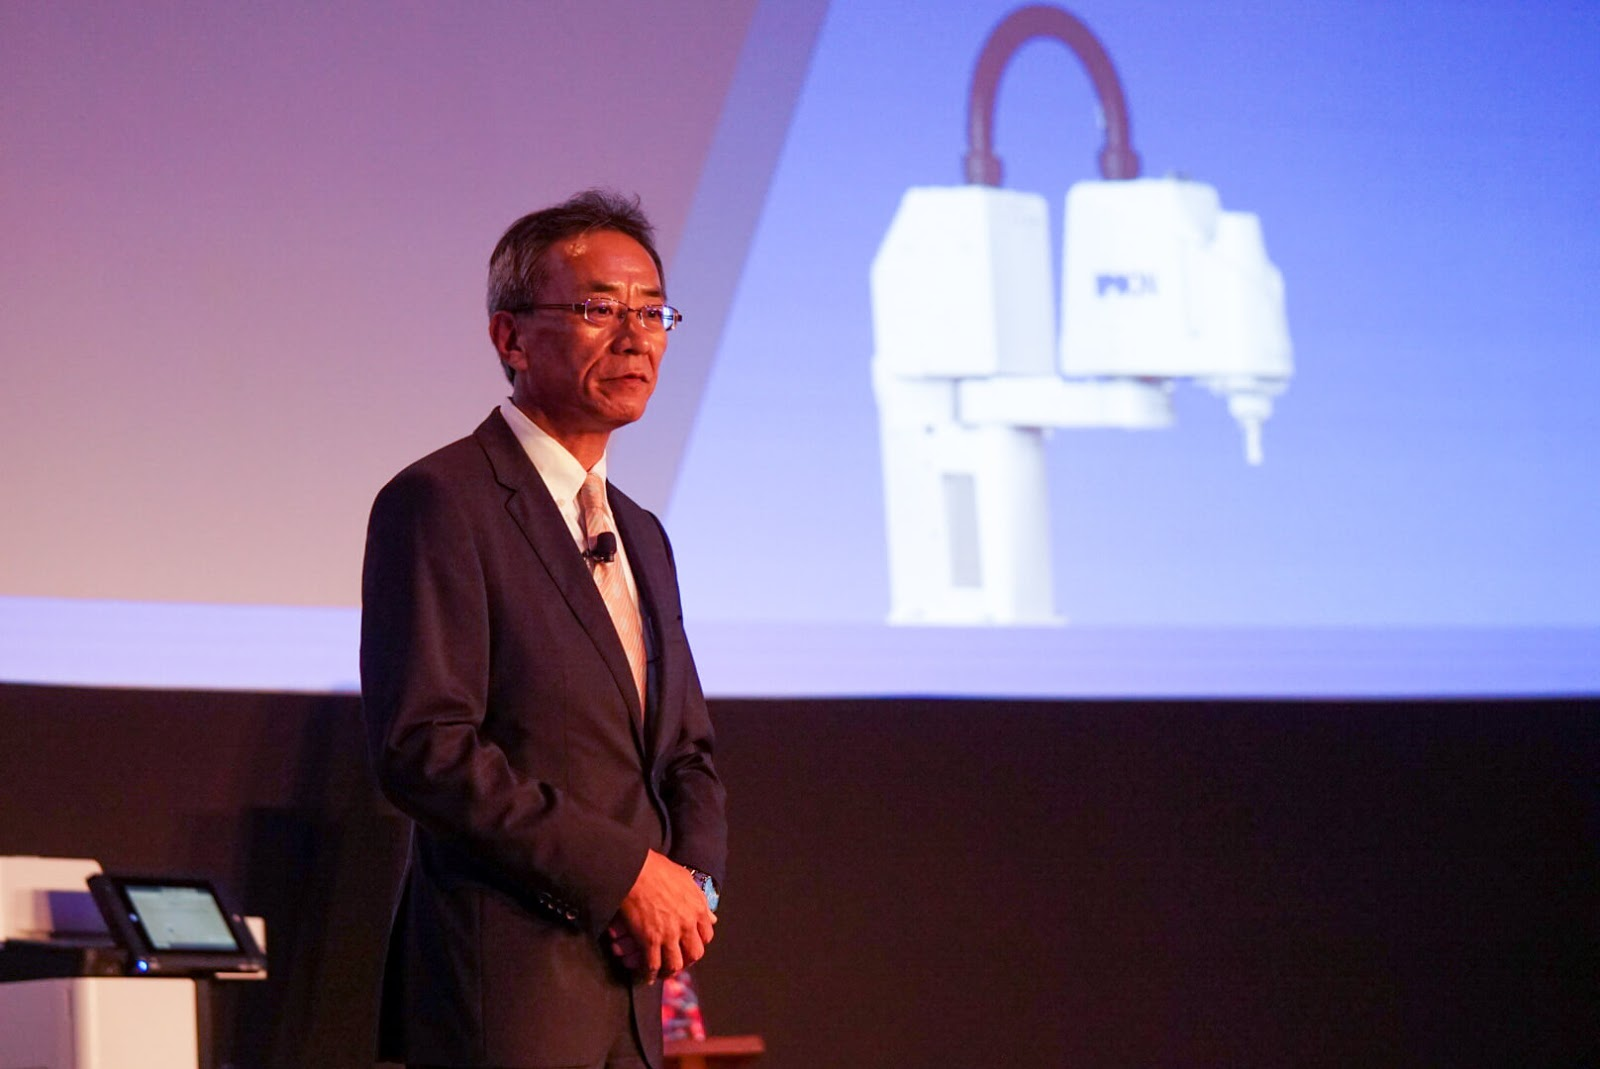 Epson Singapore Celebrates 35th Anniversary; Set to Innovate Enterprise and Business Segments